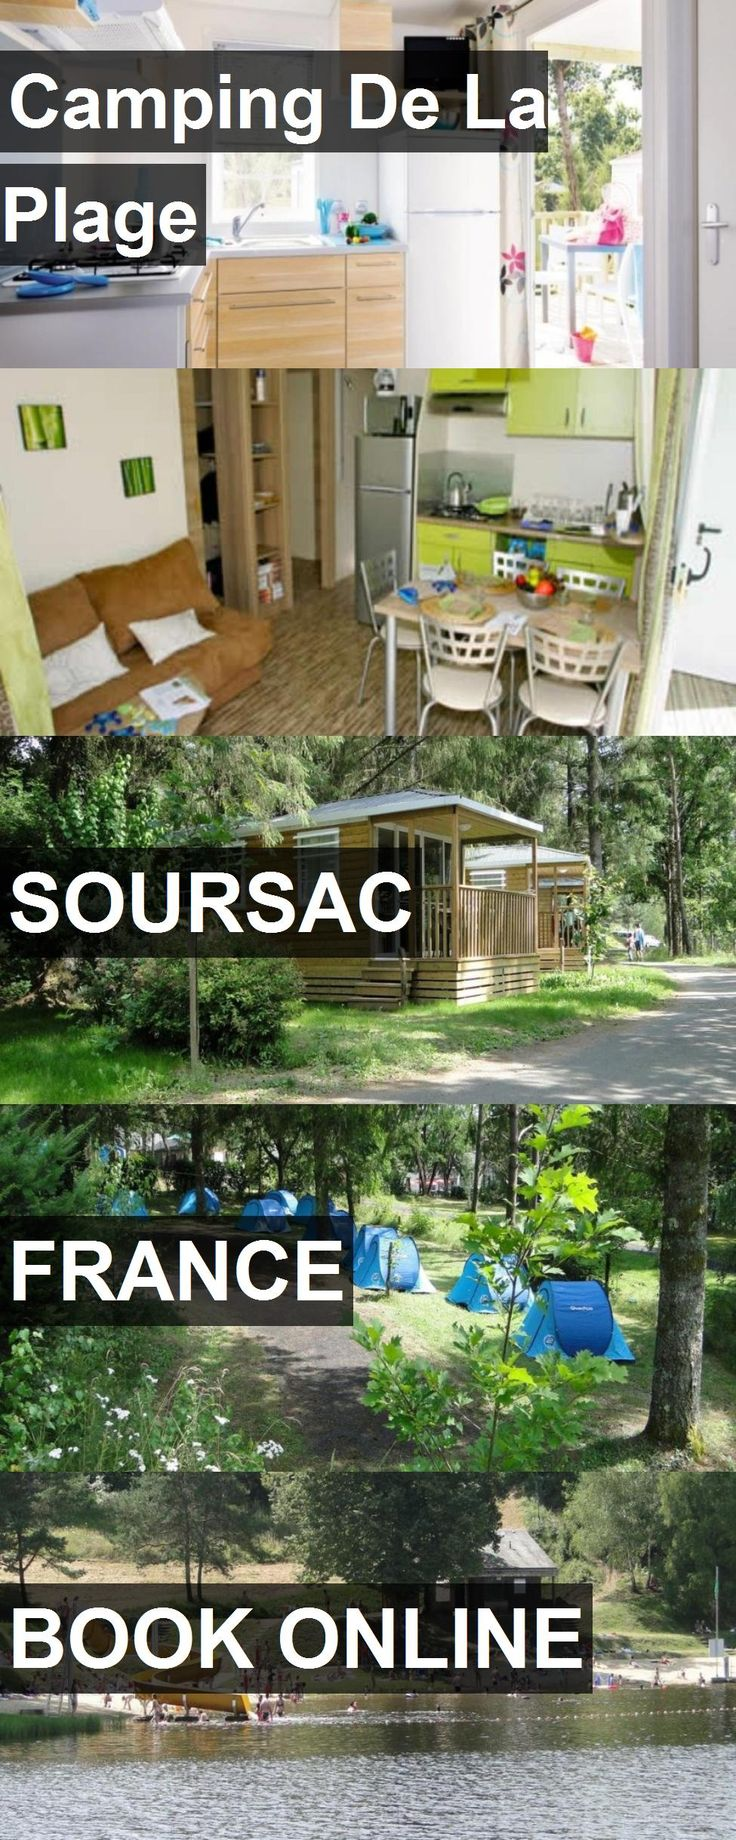 Hotel Camping De La Plage in Soursac, France. For more information, photos, reviews and best prices please follow the link. #France #Soursac #CampingDeLaPlage #hotel #travel #vacation